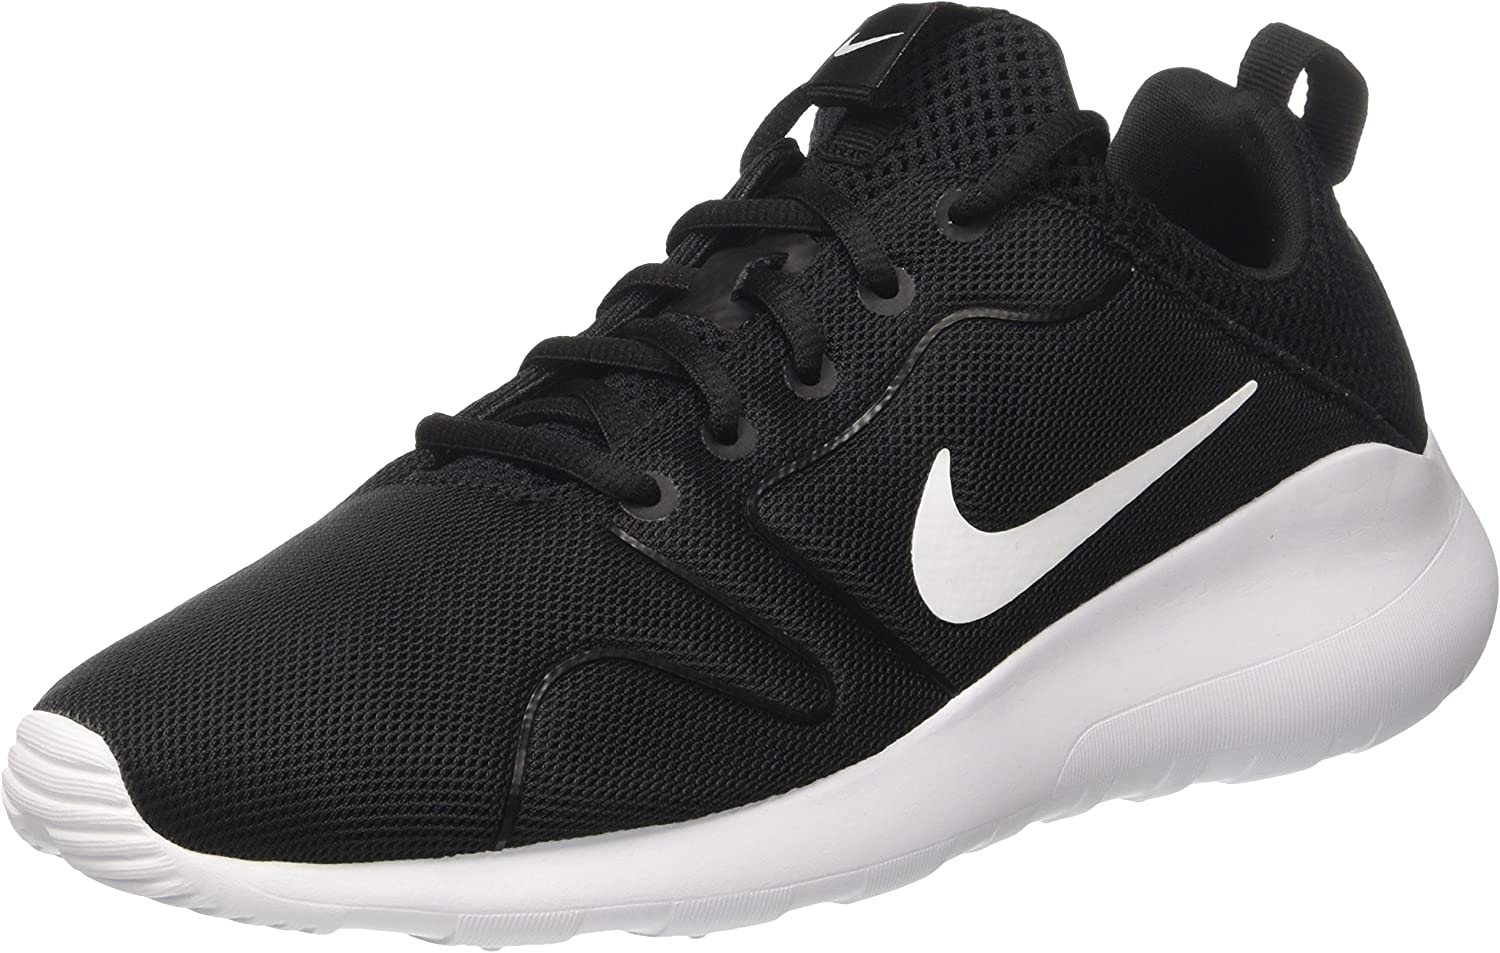 Nike Men's Kaishi 2.0 Low-Top Sneakers